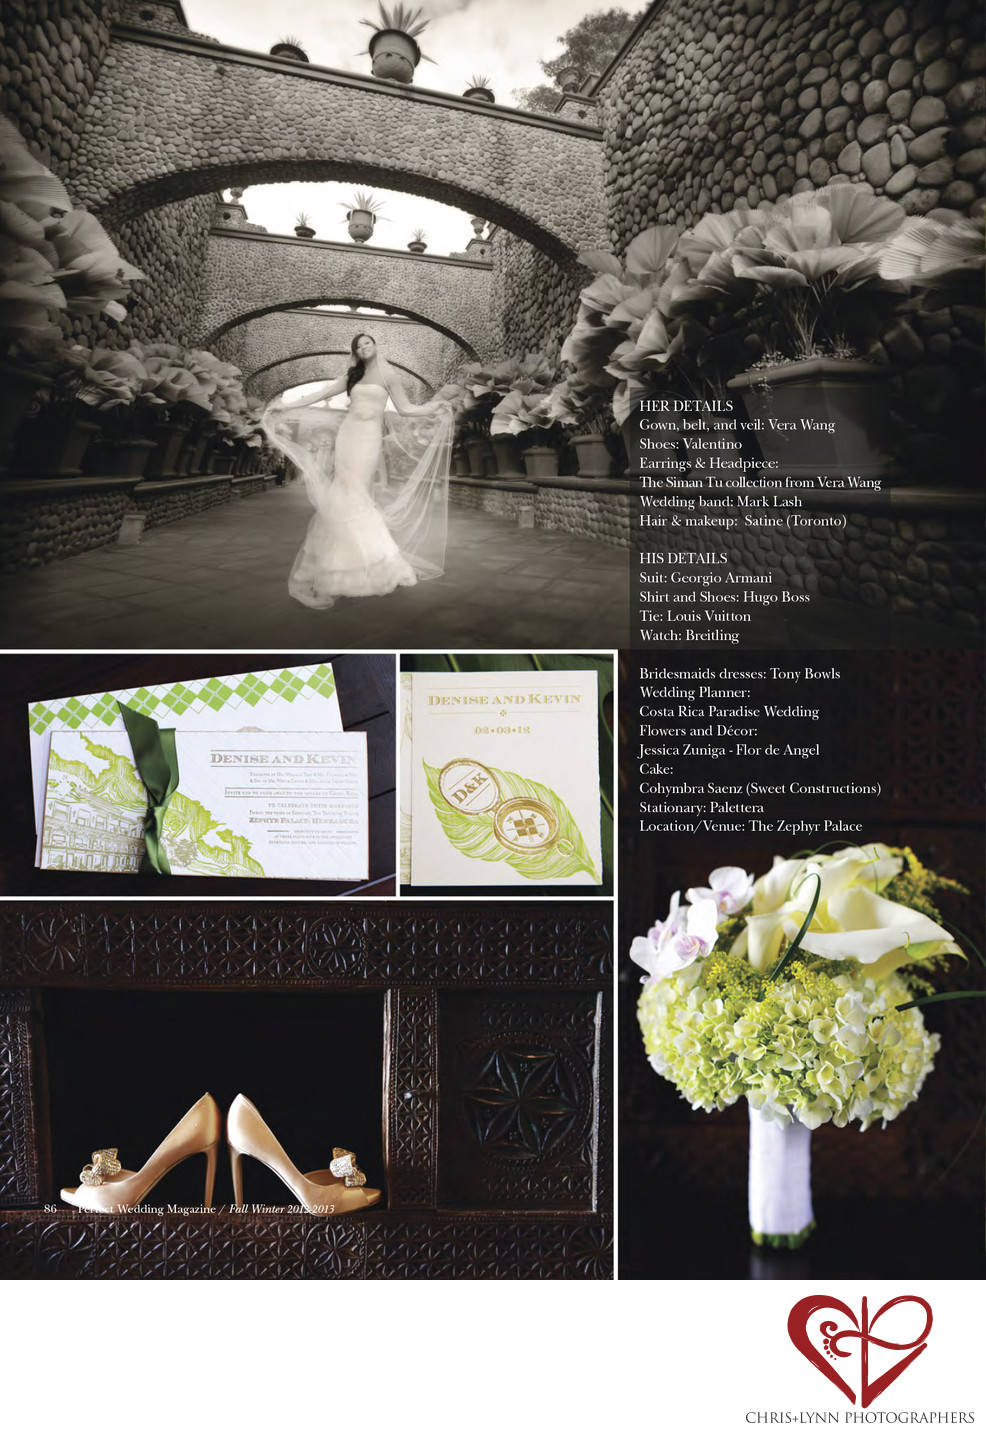 PW MAGAZINE COSTA RICA WEDDING 1